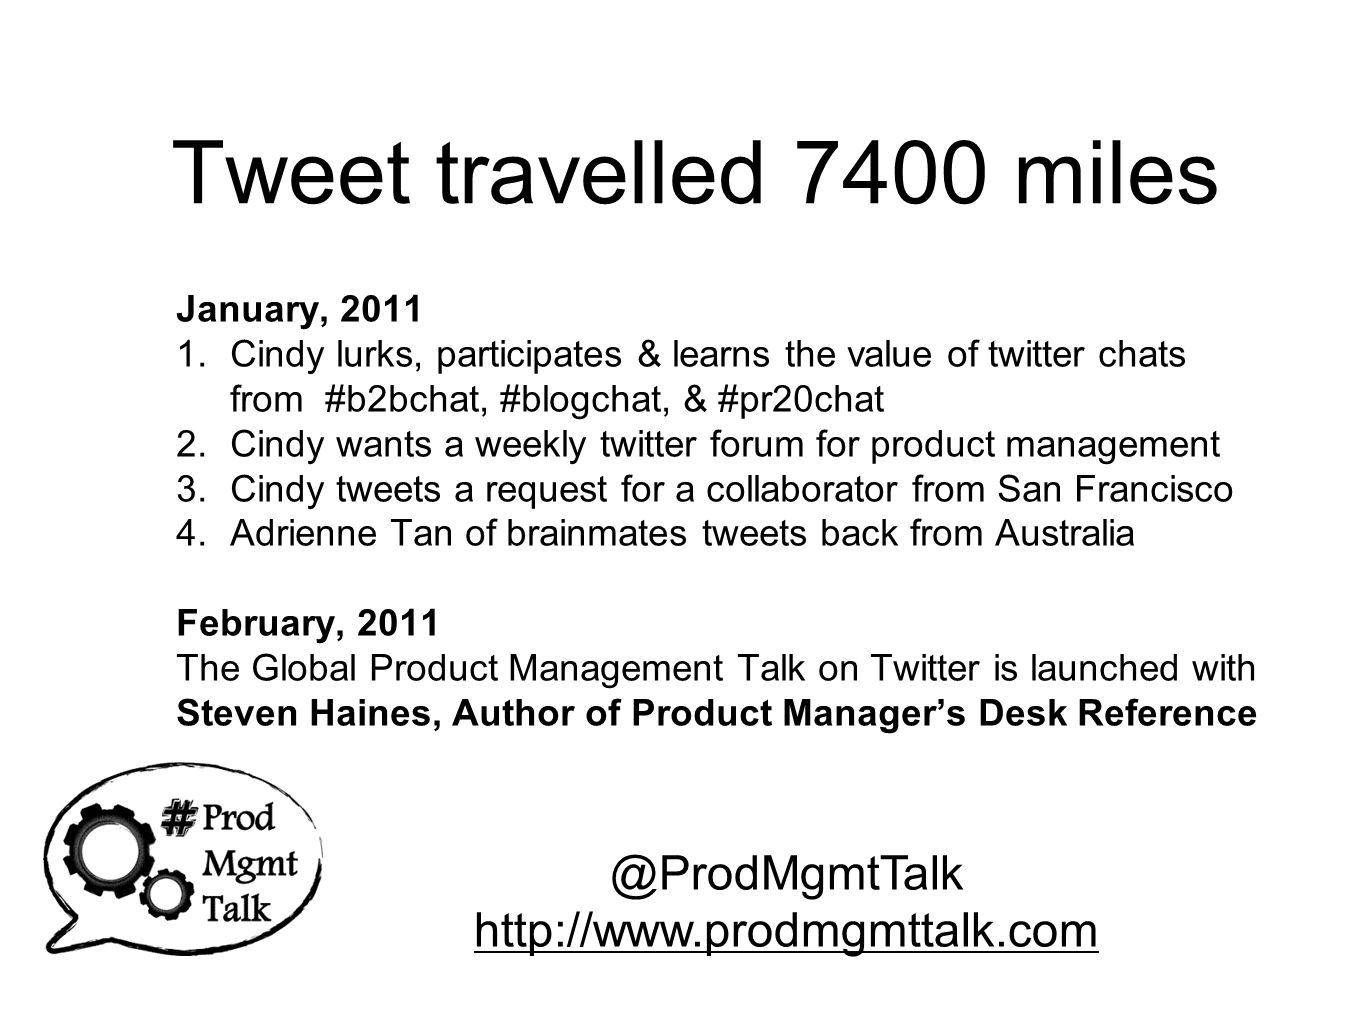 Tweet travelled 7400 miles January, 2011 1.Cindy lurks, participates & learns the value of twitter chats from #b2bchat, #blogchat, & #pr20chat 2.Cindy wants a weekly twitter forum for product management 3.Cindy tweets a request for a collaborator from San Francisco 4.Adrienne Tan of brainmates tweets back from Australia February, 2011 The Global Product Management Talk on Twitter is launched with Steven Haines, Author of Product Manager's Desk Reference @ProdMgmtTalk http://www.prodmgmttalk.com